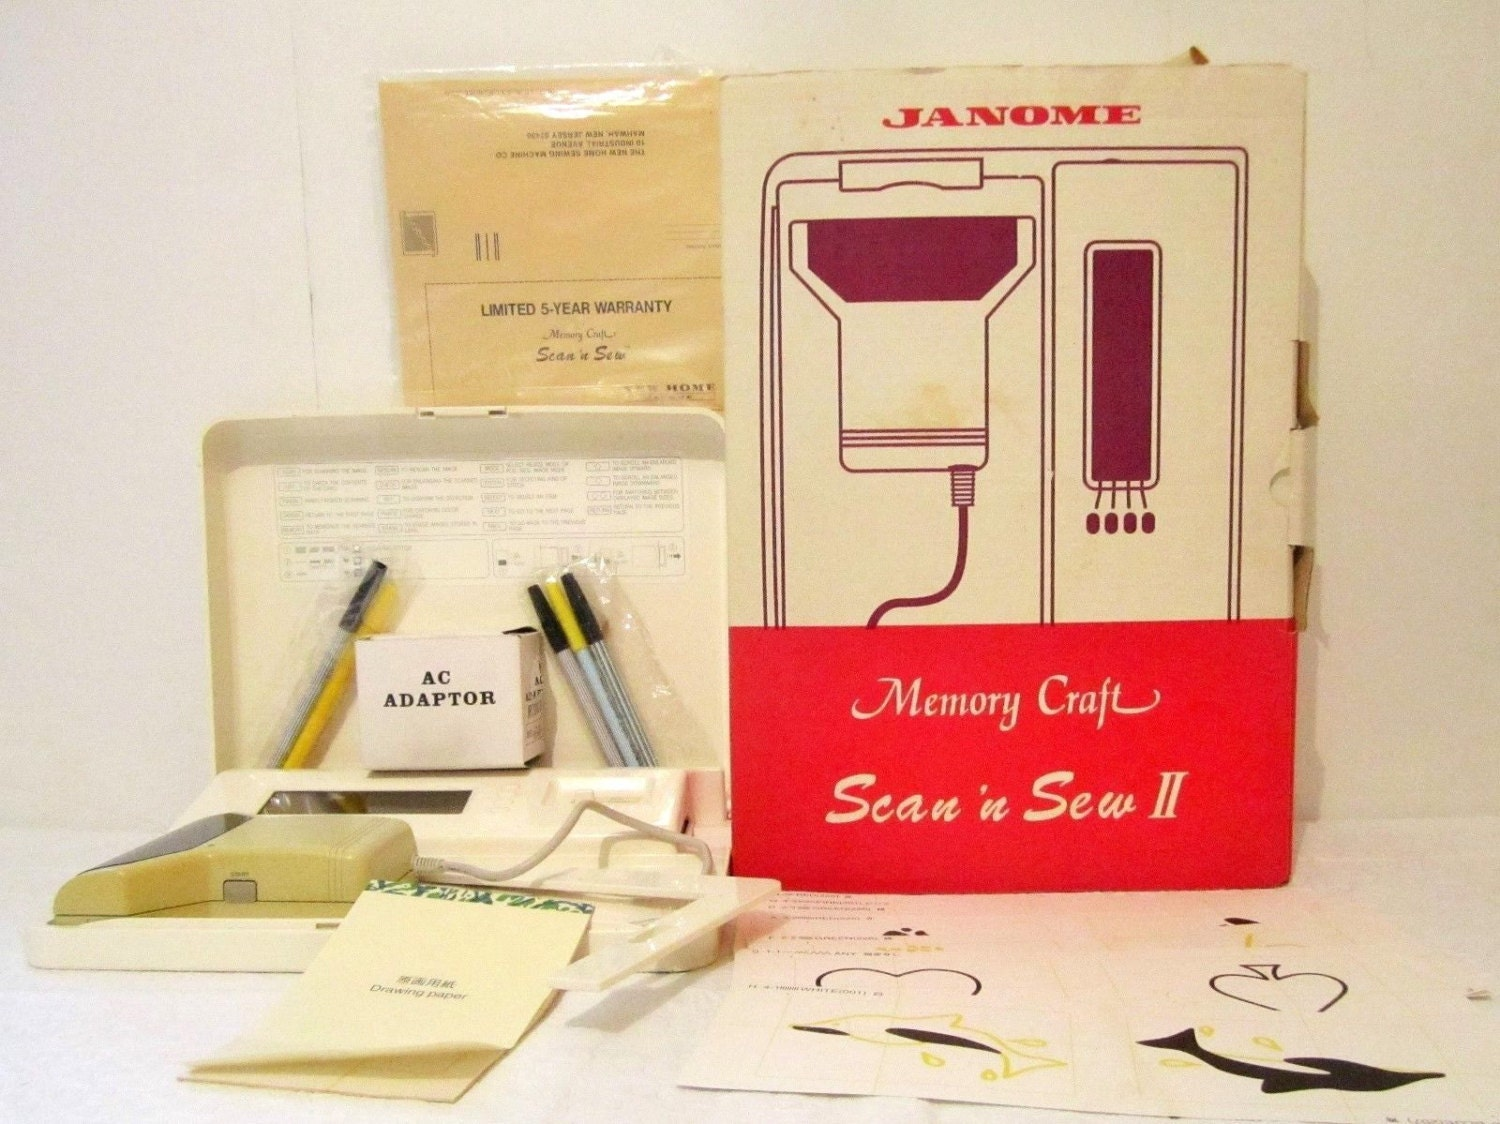 Janome memory craft 9000 - Sold By Luckypennytrading